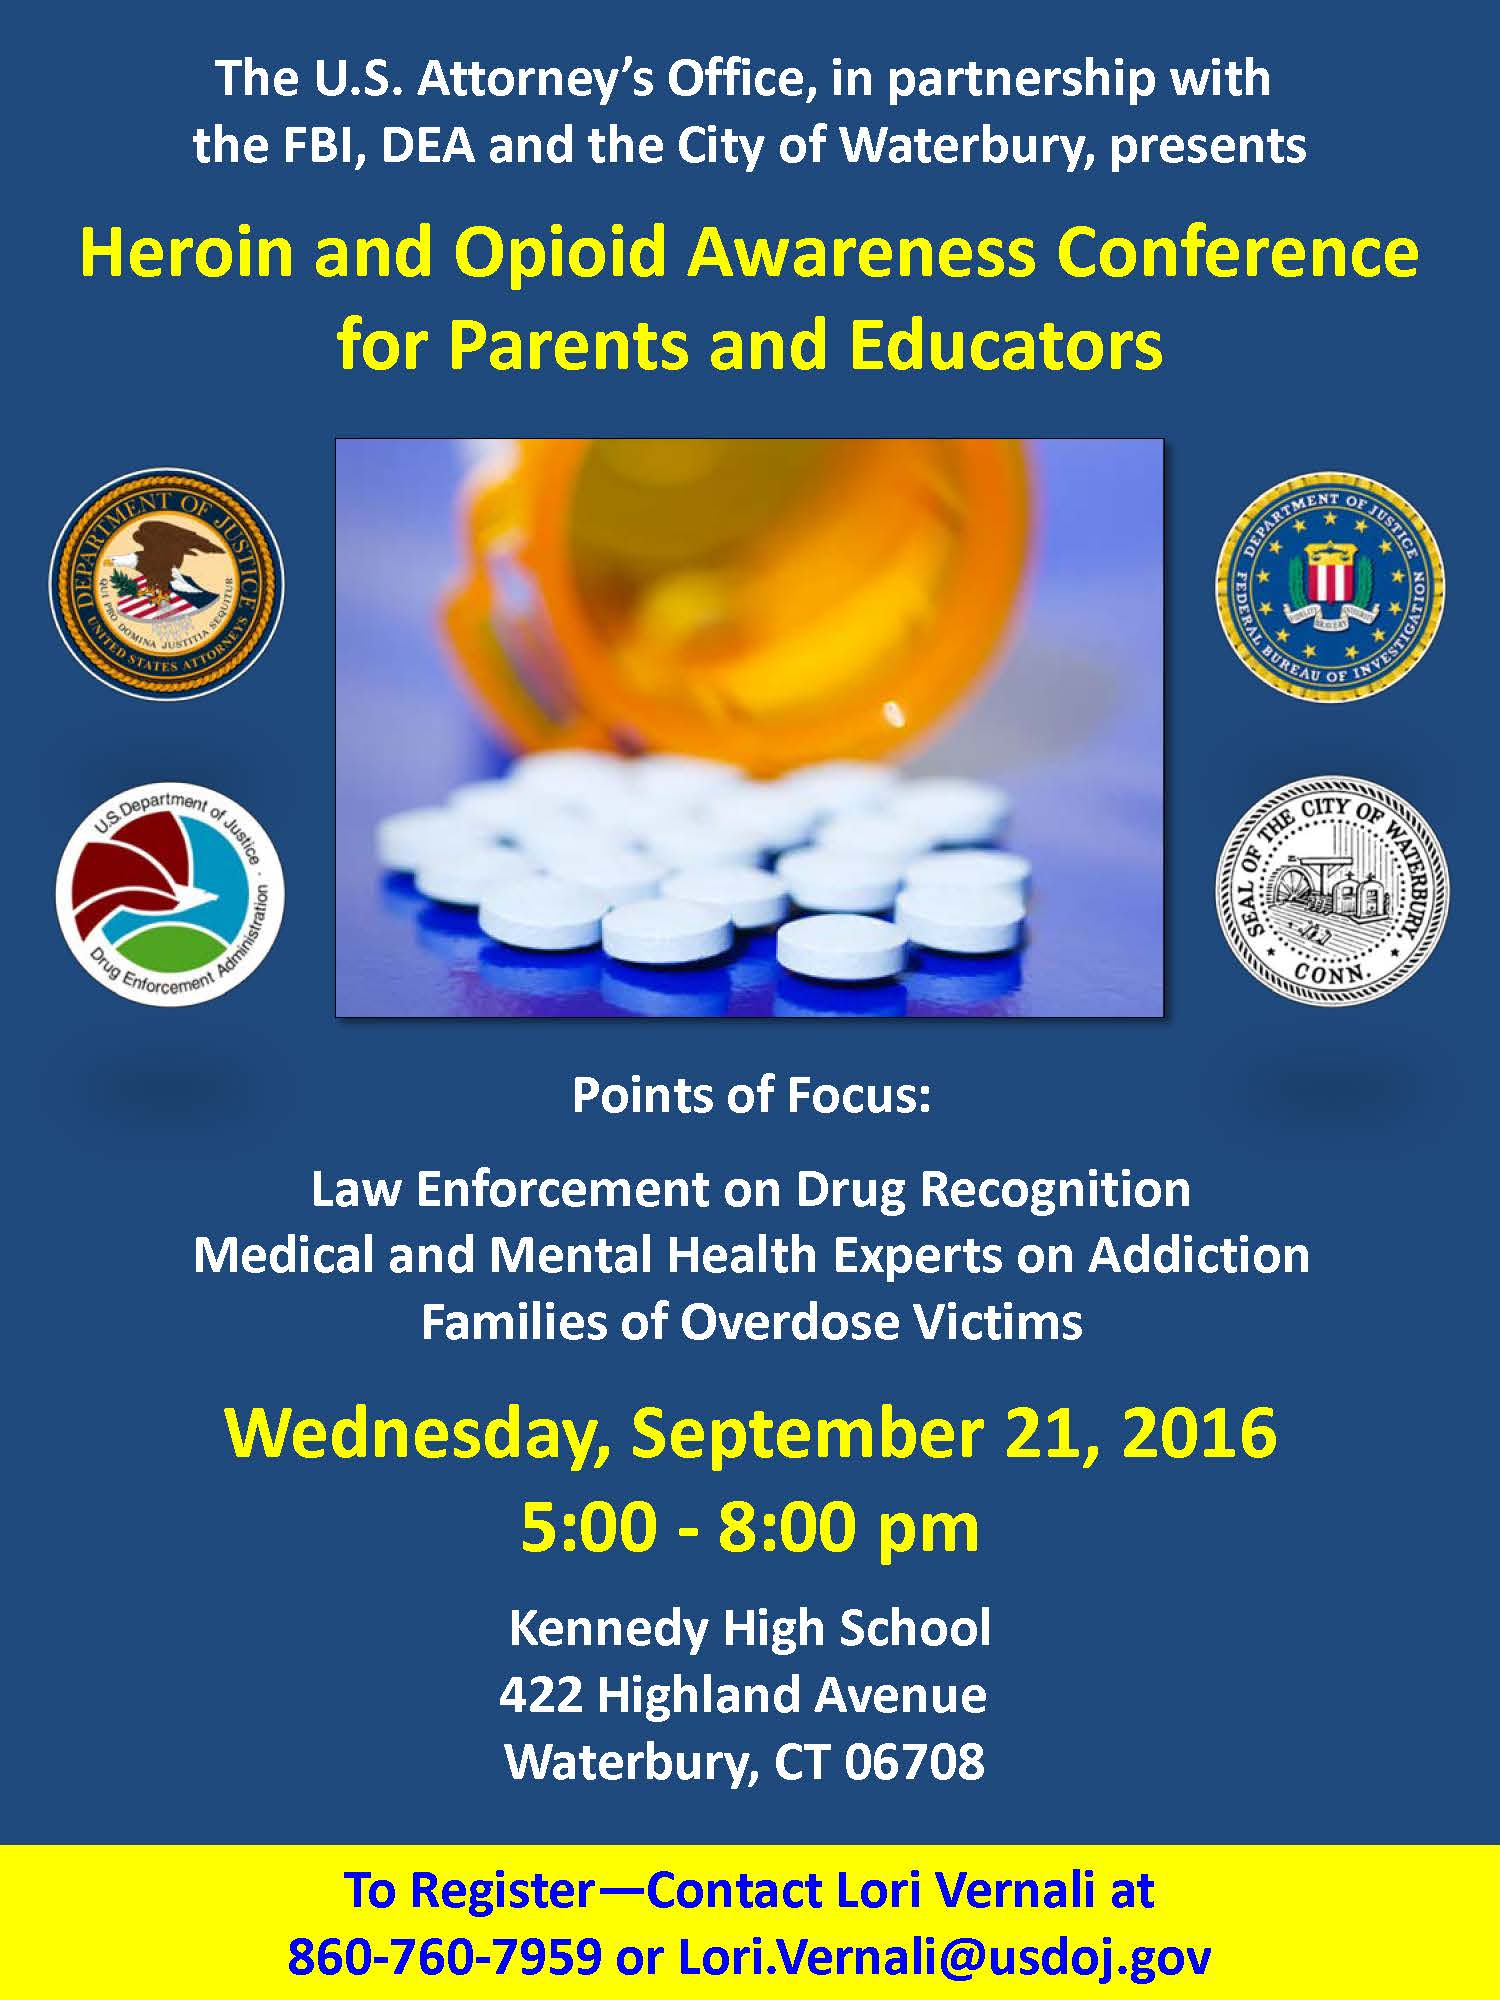 Heroin Opioid Awareness Conference